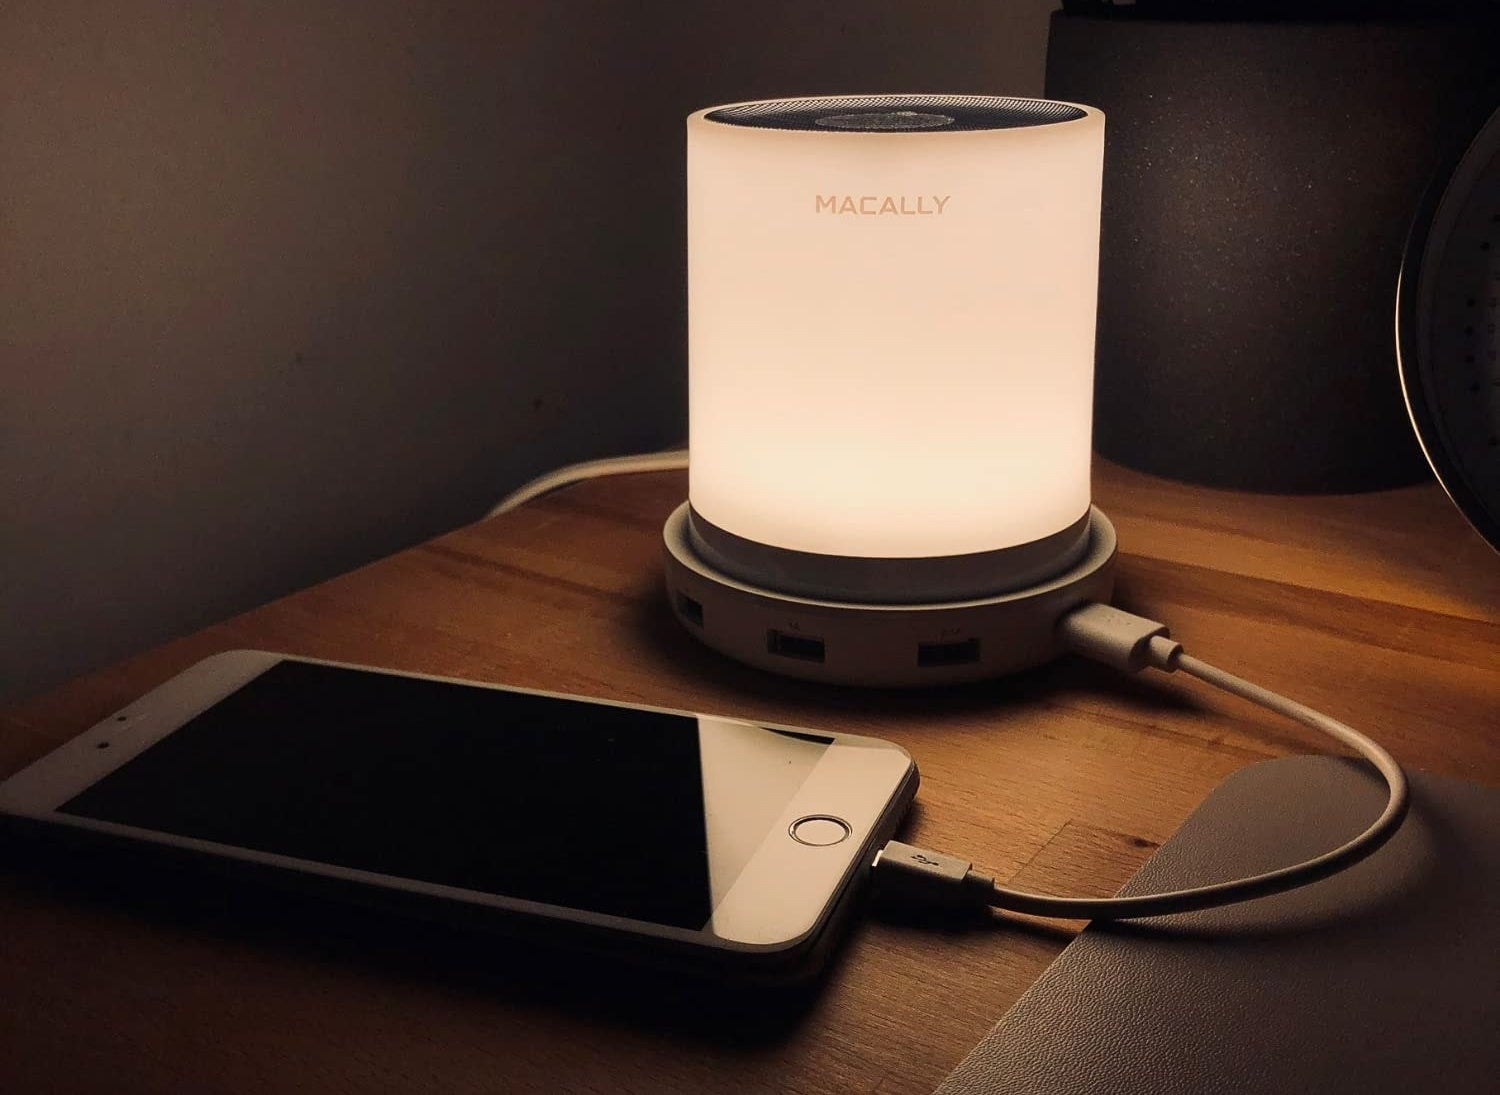 The light on a night table with a charging cellphone plugged in